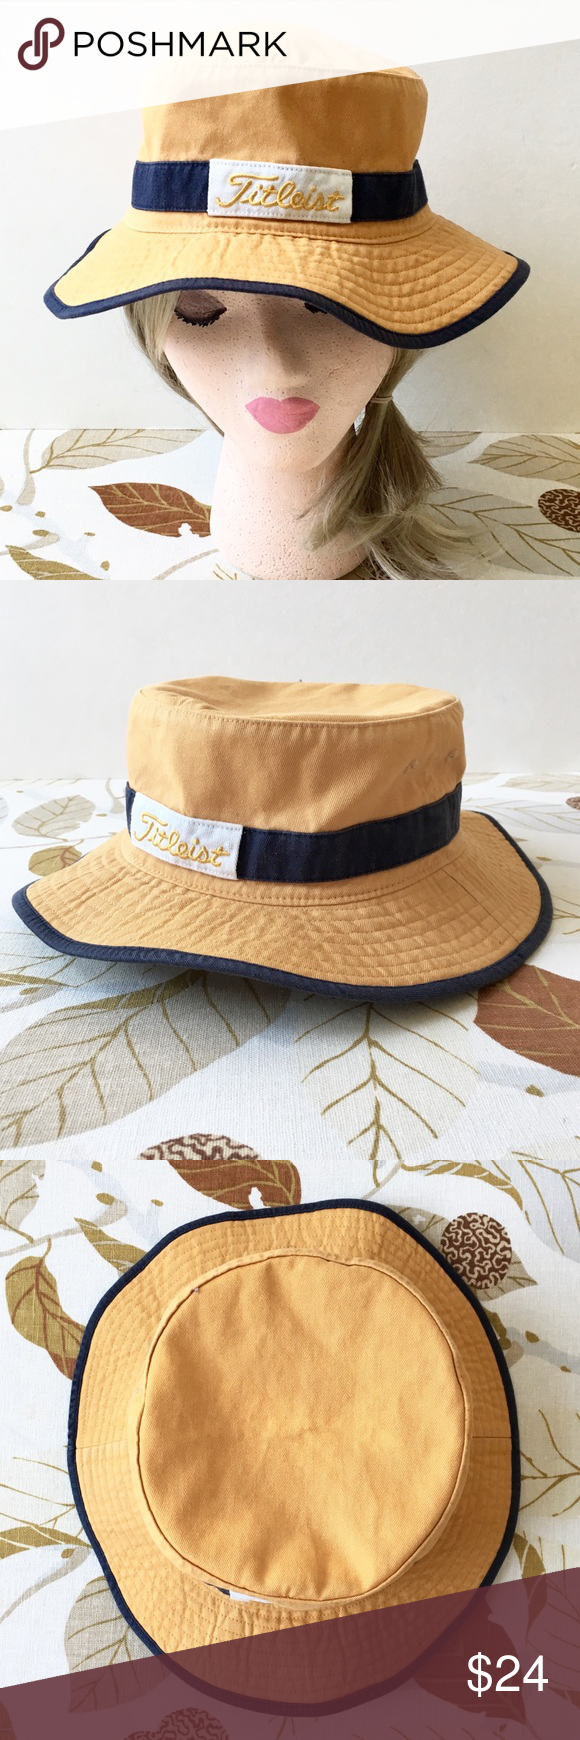 """60f300f9f28 """"Titleist"""" Men s Small Medium Cotton Bucket Hat Can be unisex. Additional  information and measurements to be added soon. Please feel free to ask  questions"""